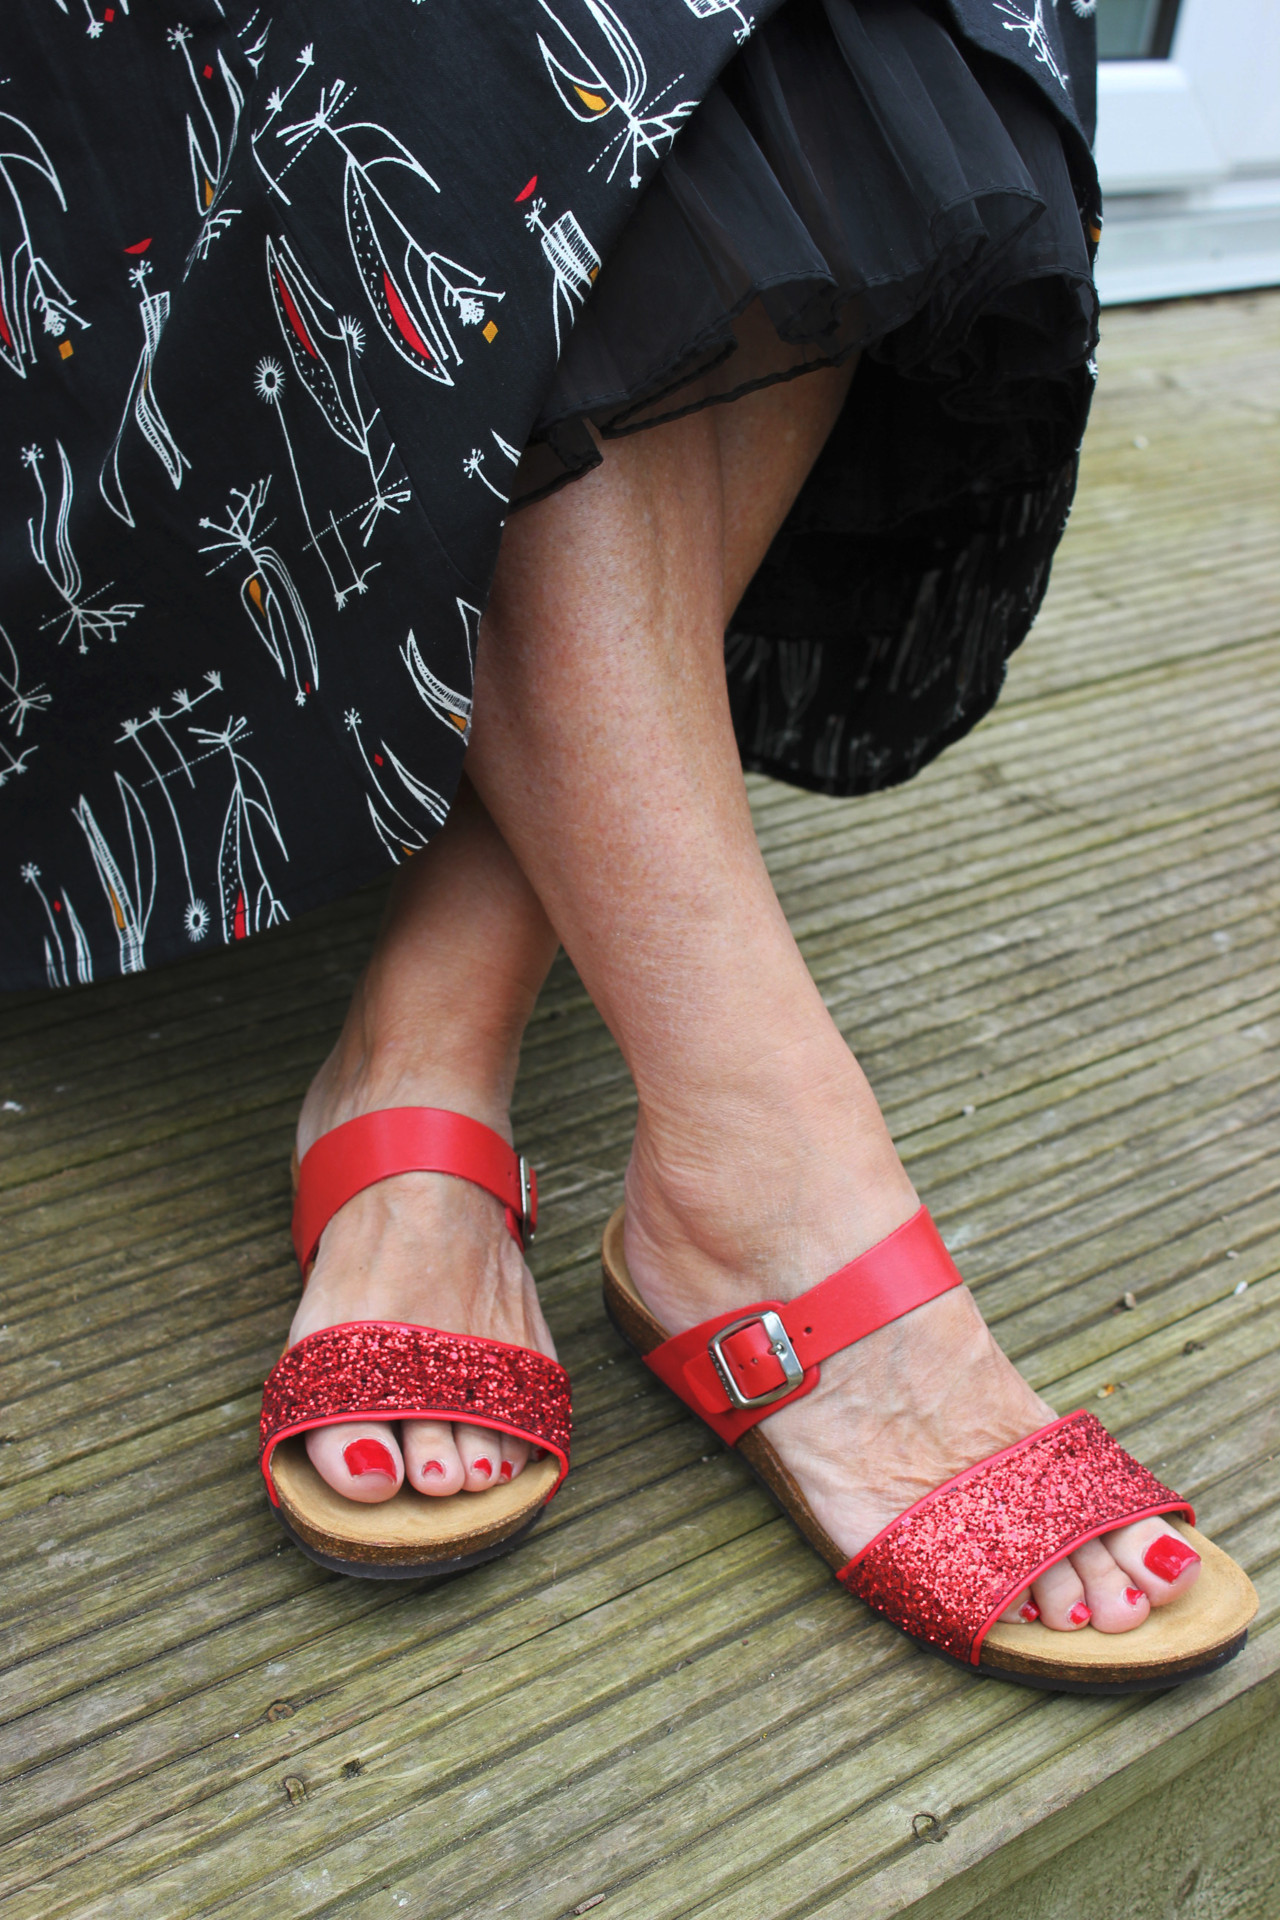 Moshulu sparkly sandals